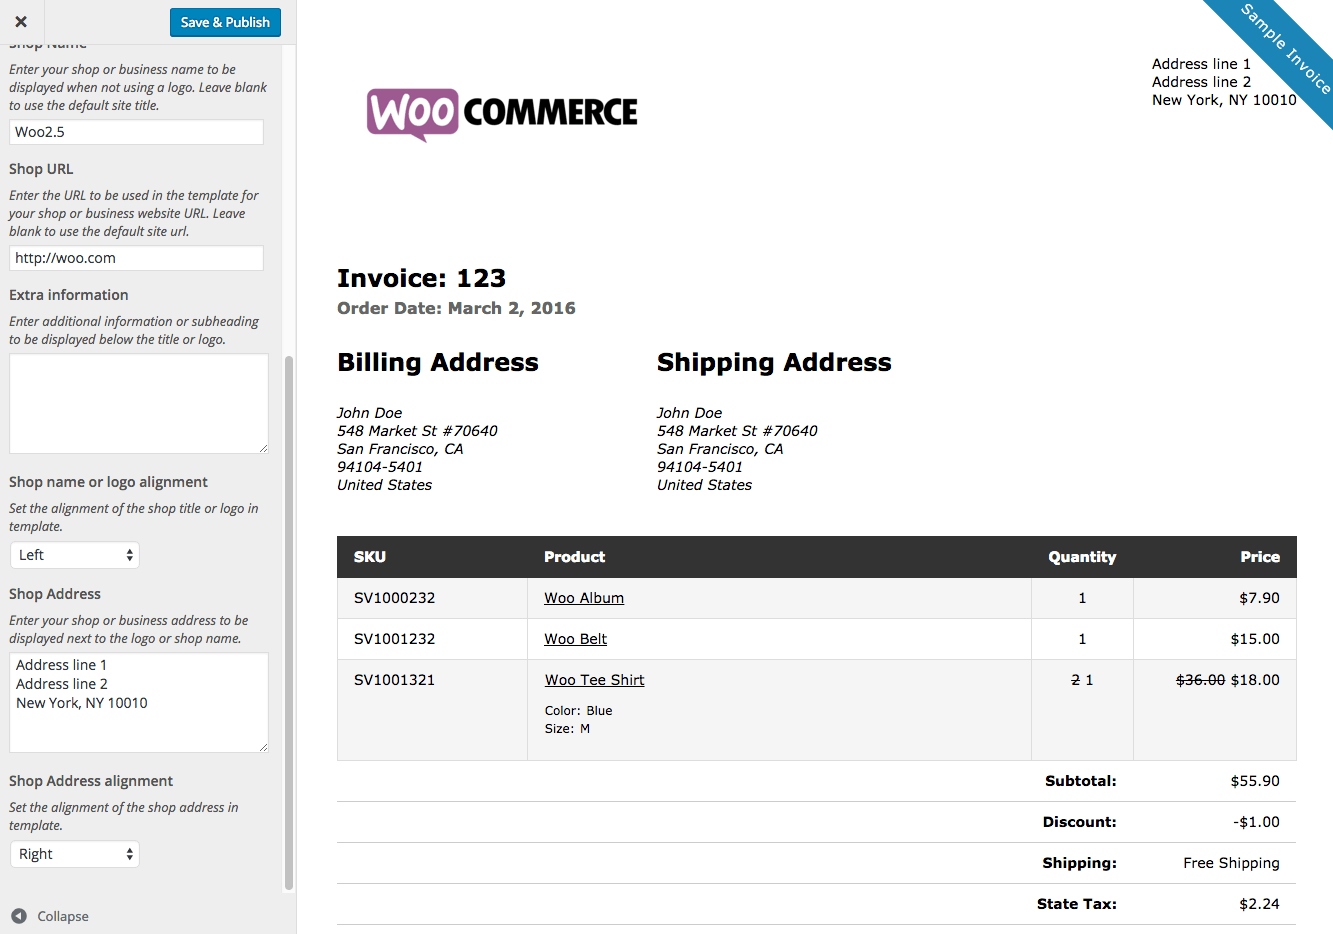 Weirdmailus  Wonderful Woocommerce Print Invoices Amp Packing Lists  Woocommerce Docs With Lovely Woocommerce Print Invoices  Packing Lists Customizer With Archaic Visa Receipt Requirements Also How To Write A Receipt Book In Addition Paid Receipt Template And Pork Receipt As Well As Free Download Receipt Template Additionally Receipt For Lasagna From Docswoocommercecom With Weirdmailus  Lovely Woocommerce Print Invoices Amp Packing Lists  Woocommerce Docs With Archaic Woocommerce Print Invoices  Packing Lists Customizer And Wonderful Visa Receipt Requirements Also How To Write A Receipt Book In Addition Paid Receipt Template From Docswoocommercecom